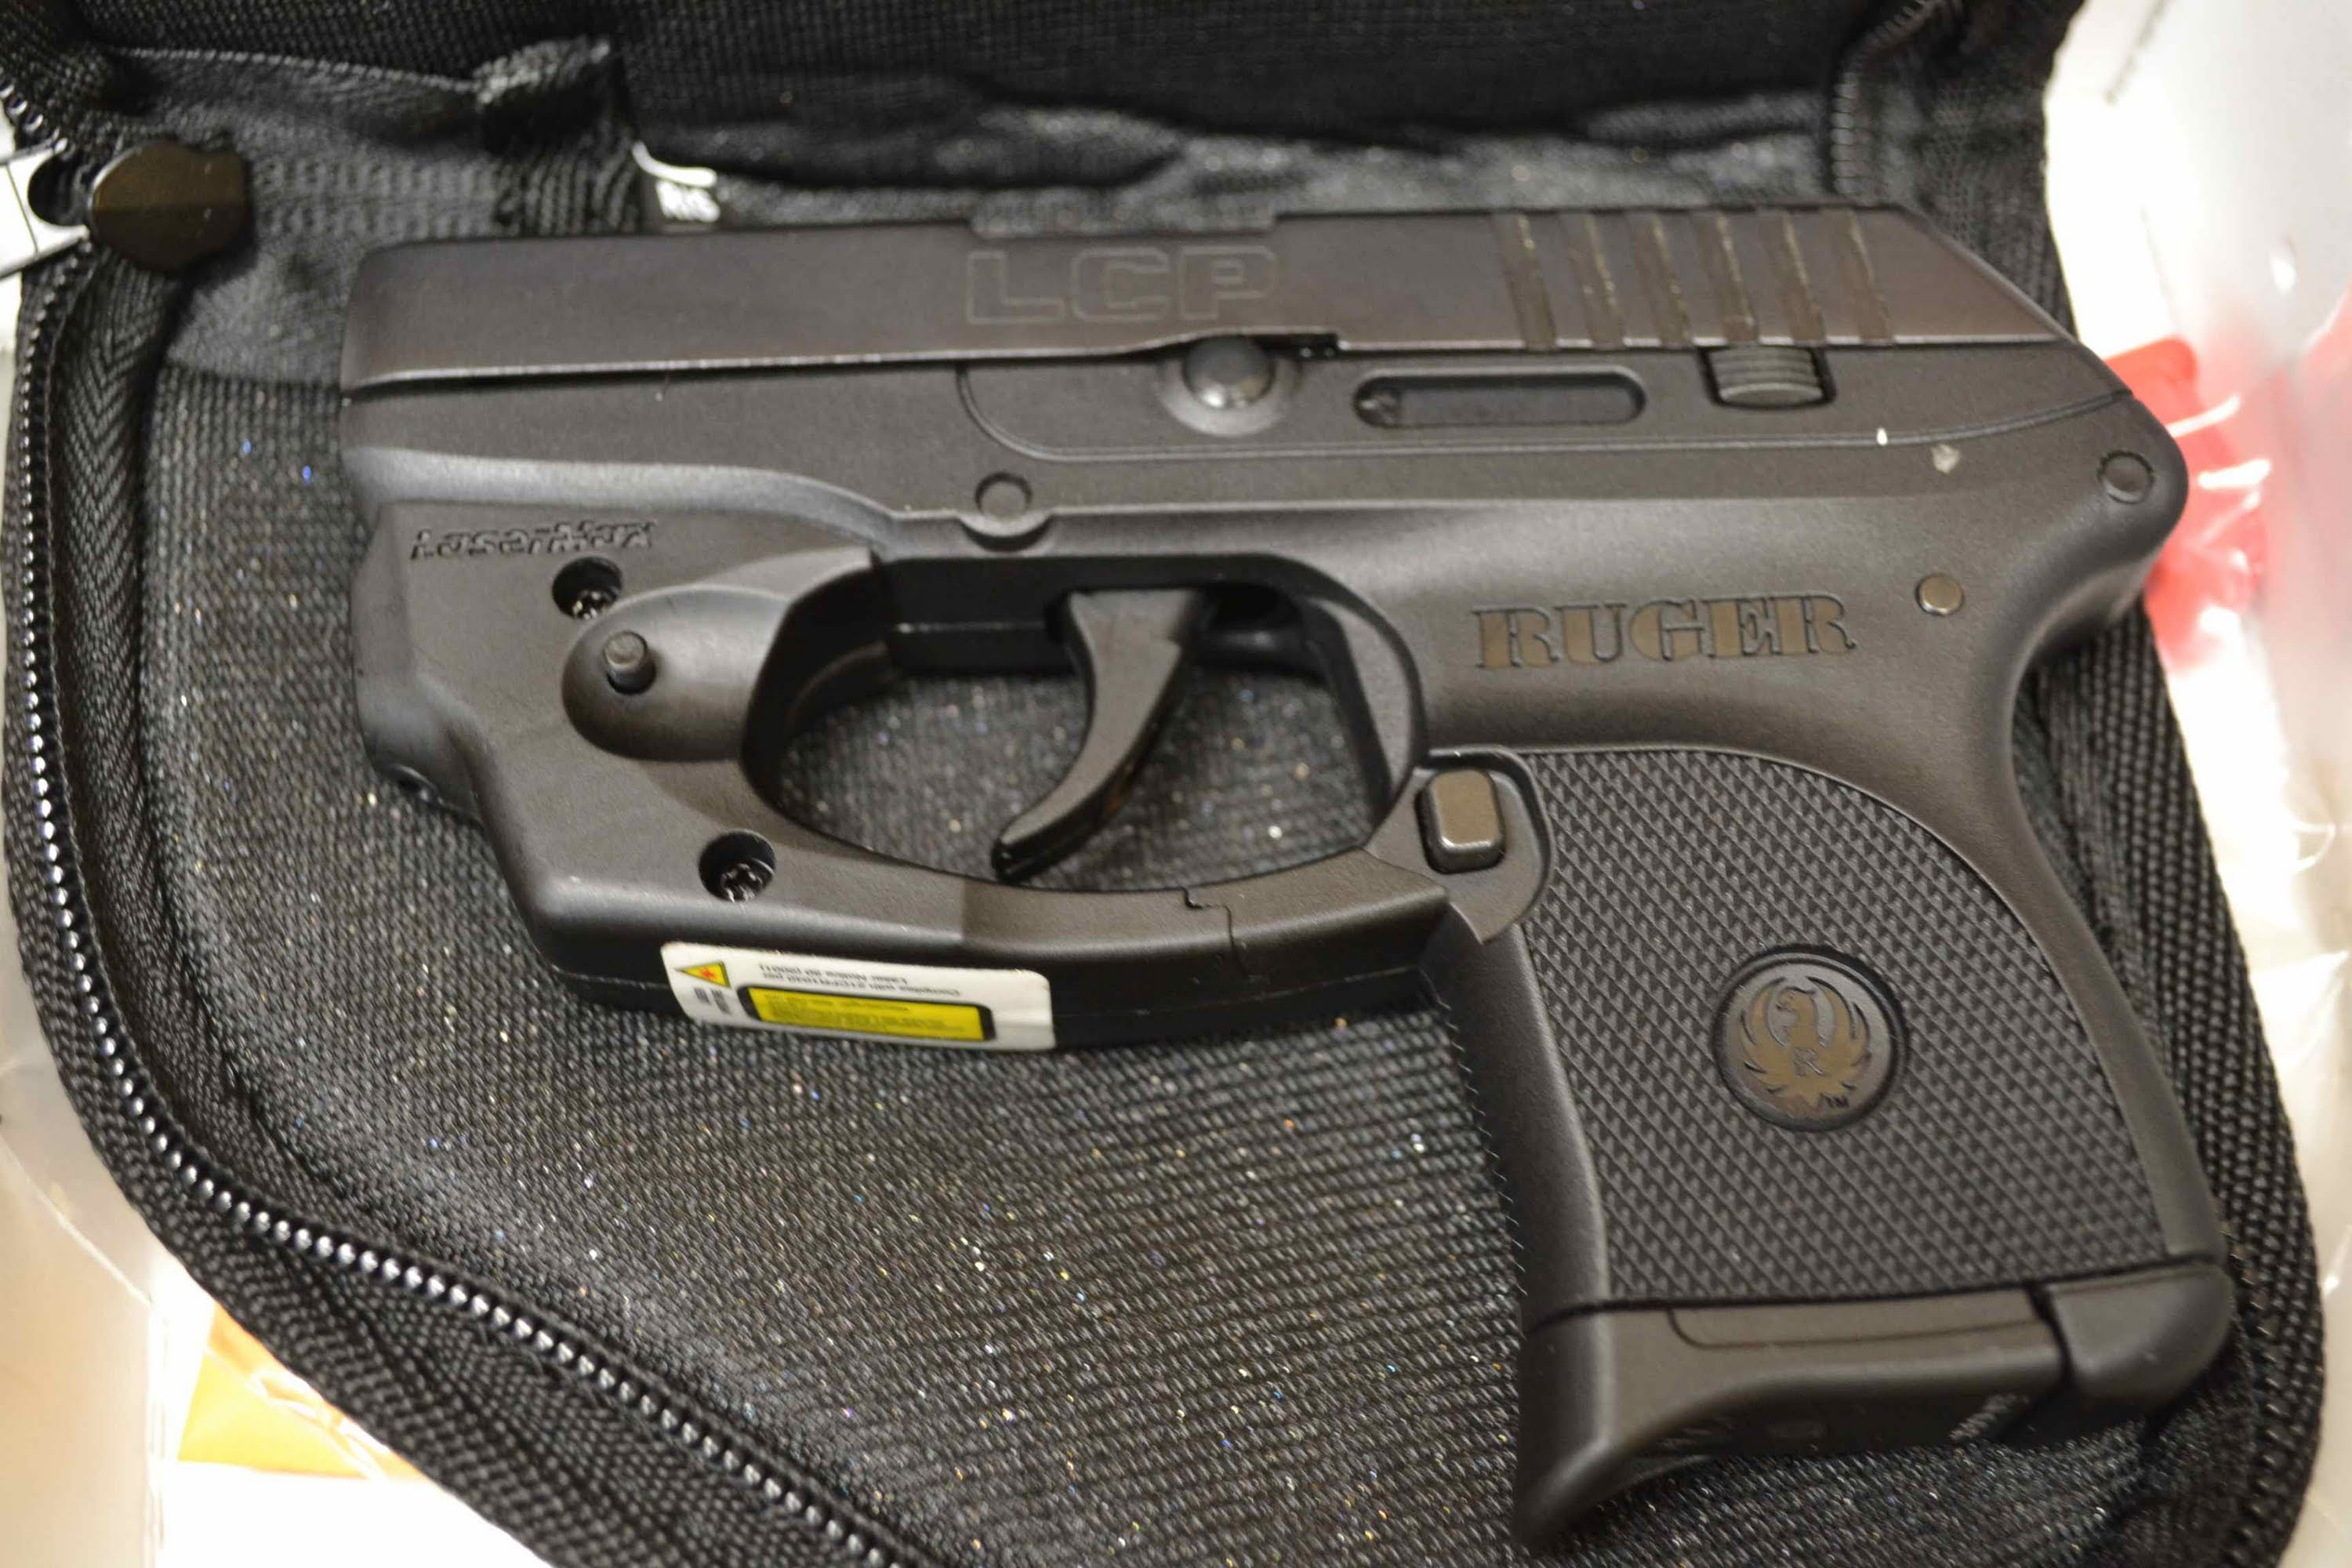 Ruger Lcp 380 Acp With Lasermax Laser And Pistol Pouch New In Box